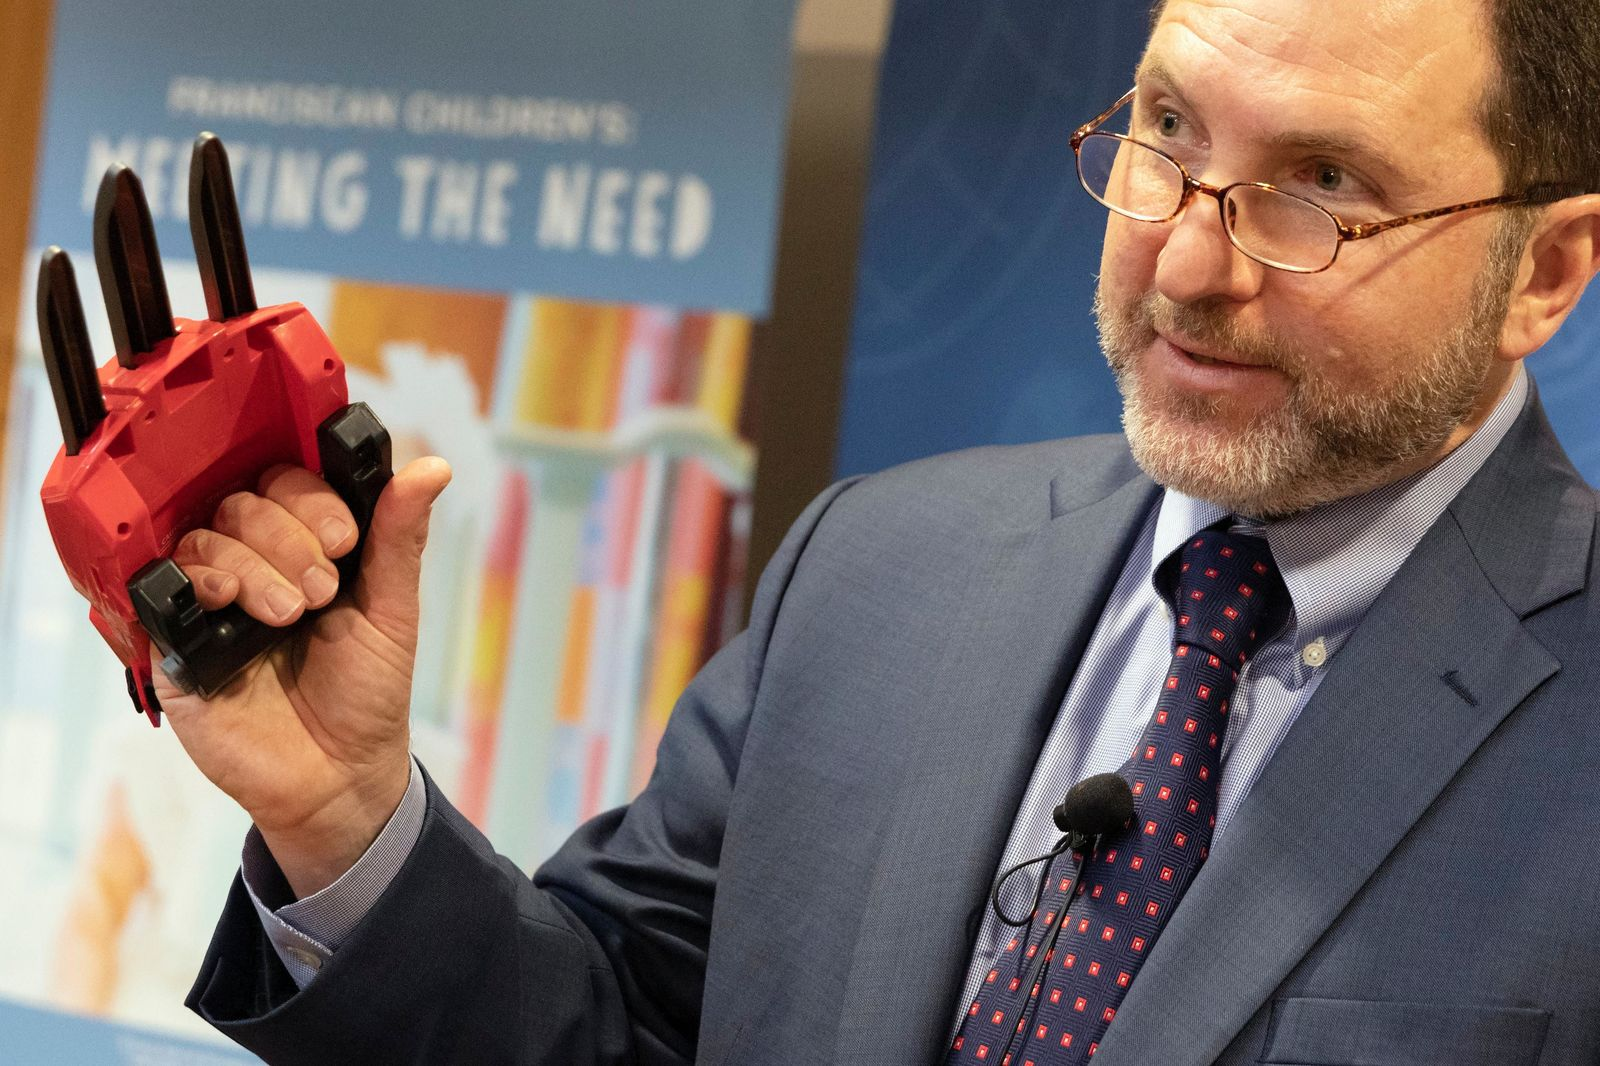 James Swarrtz, director of World Against Toys Causing Harm, talks about the dangers of the Power Rangers Electronic Cheetah Claw during a news conference in Boston, Tuesday, Nov. 19, 2019. (AP Photo/Michael Dwyer)